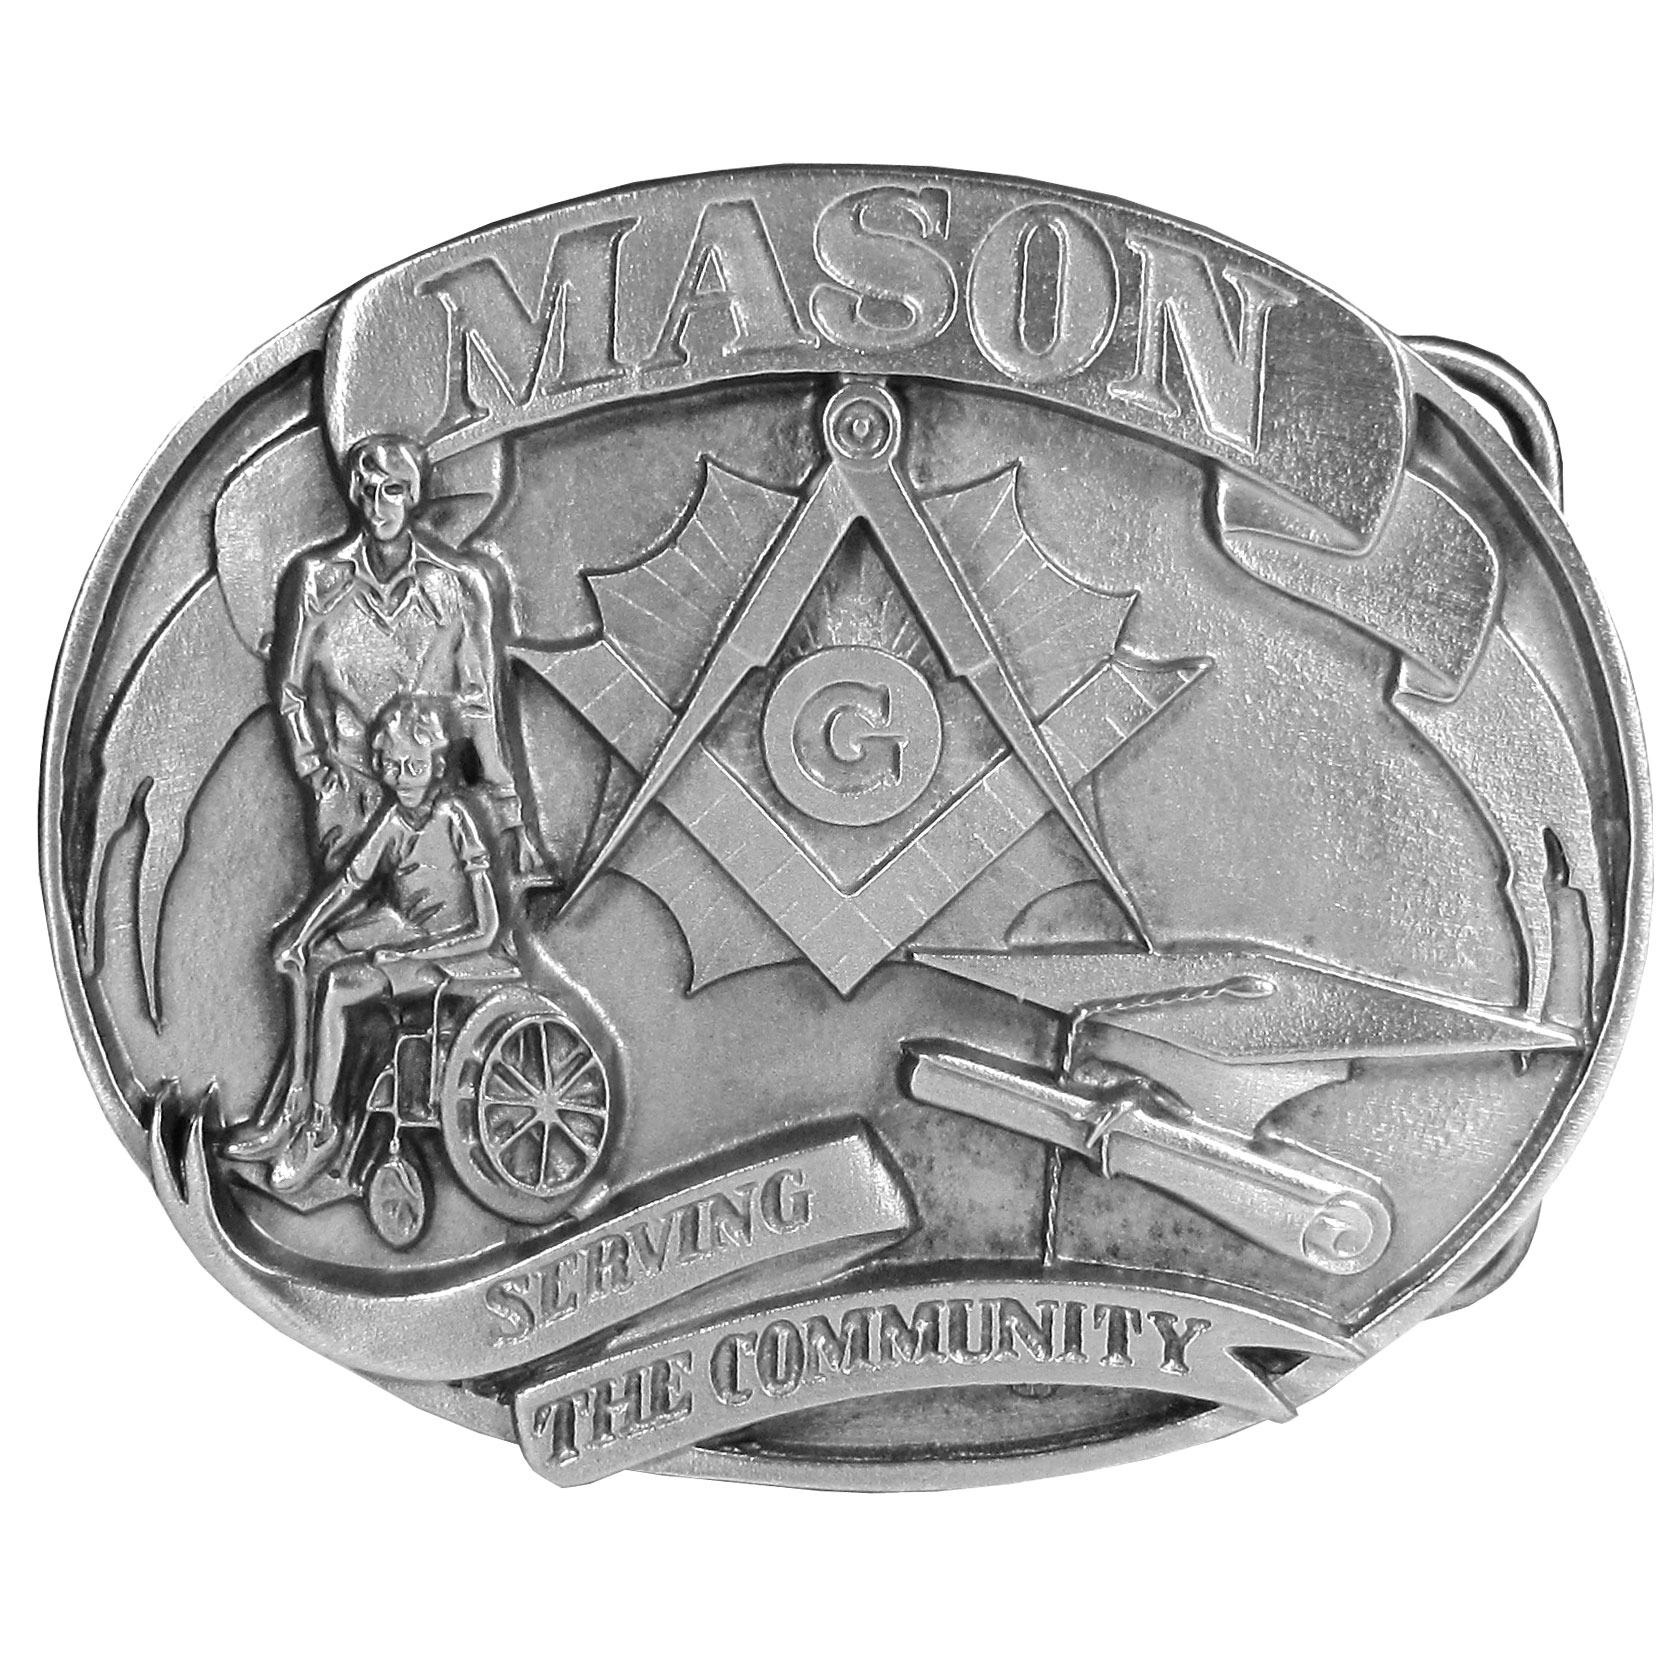 "Mason Antiqued Belt Buckle - ""Mason belt buckle is for the Freemasons who help deserving causes. It has """"Mason"""" in bold at the top, a person in a wheelchair and caregiver, a graduation cap and diploma, the Mason symbol and the words """"serving the community"""". On the back are the words """"Masonry is one of the oldest and largest fraternal organizations. Masons give great financial support for hospitals, home for widows, orphans and the aged; relief for people in distress; and scholarships for students."""" """